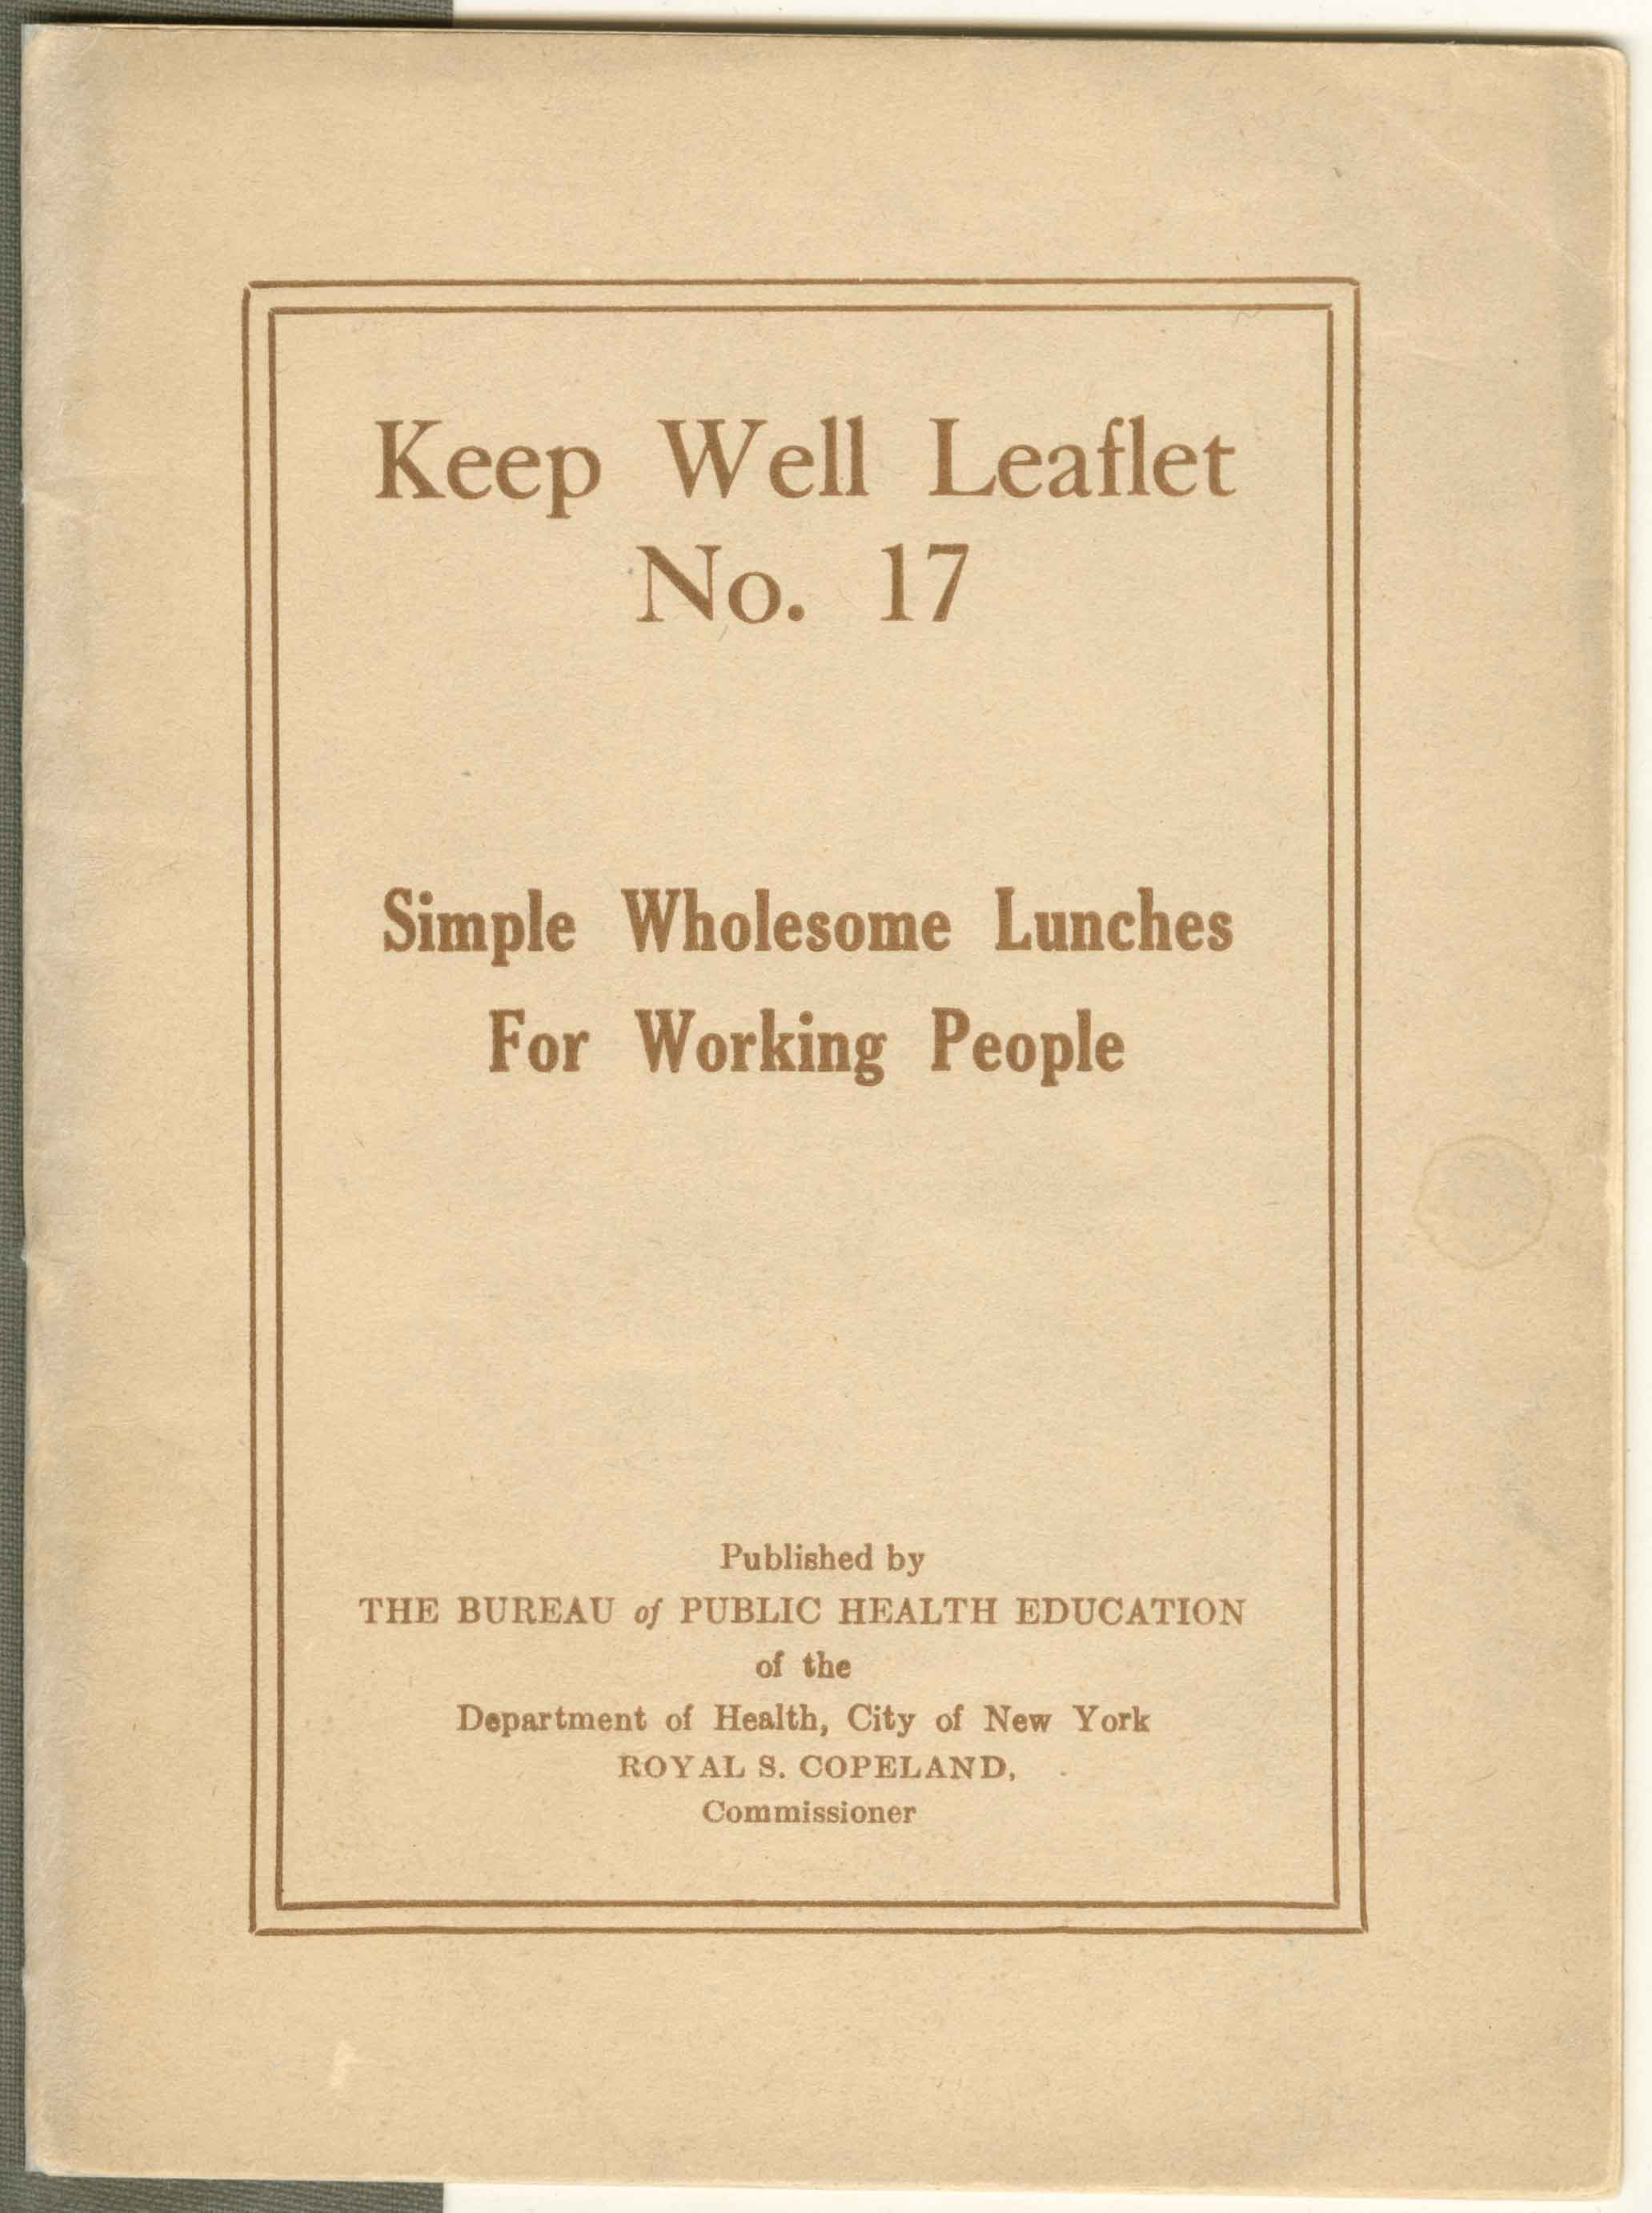 Cover of a Keep Well Leaflet from the New York City Department of Health published circa 1920 titled Simple Wholesome Lunches for Working People.